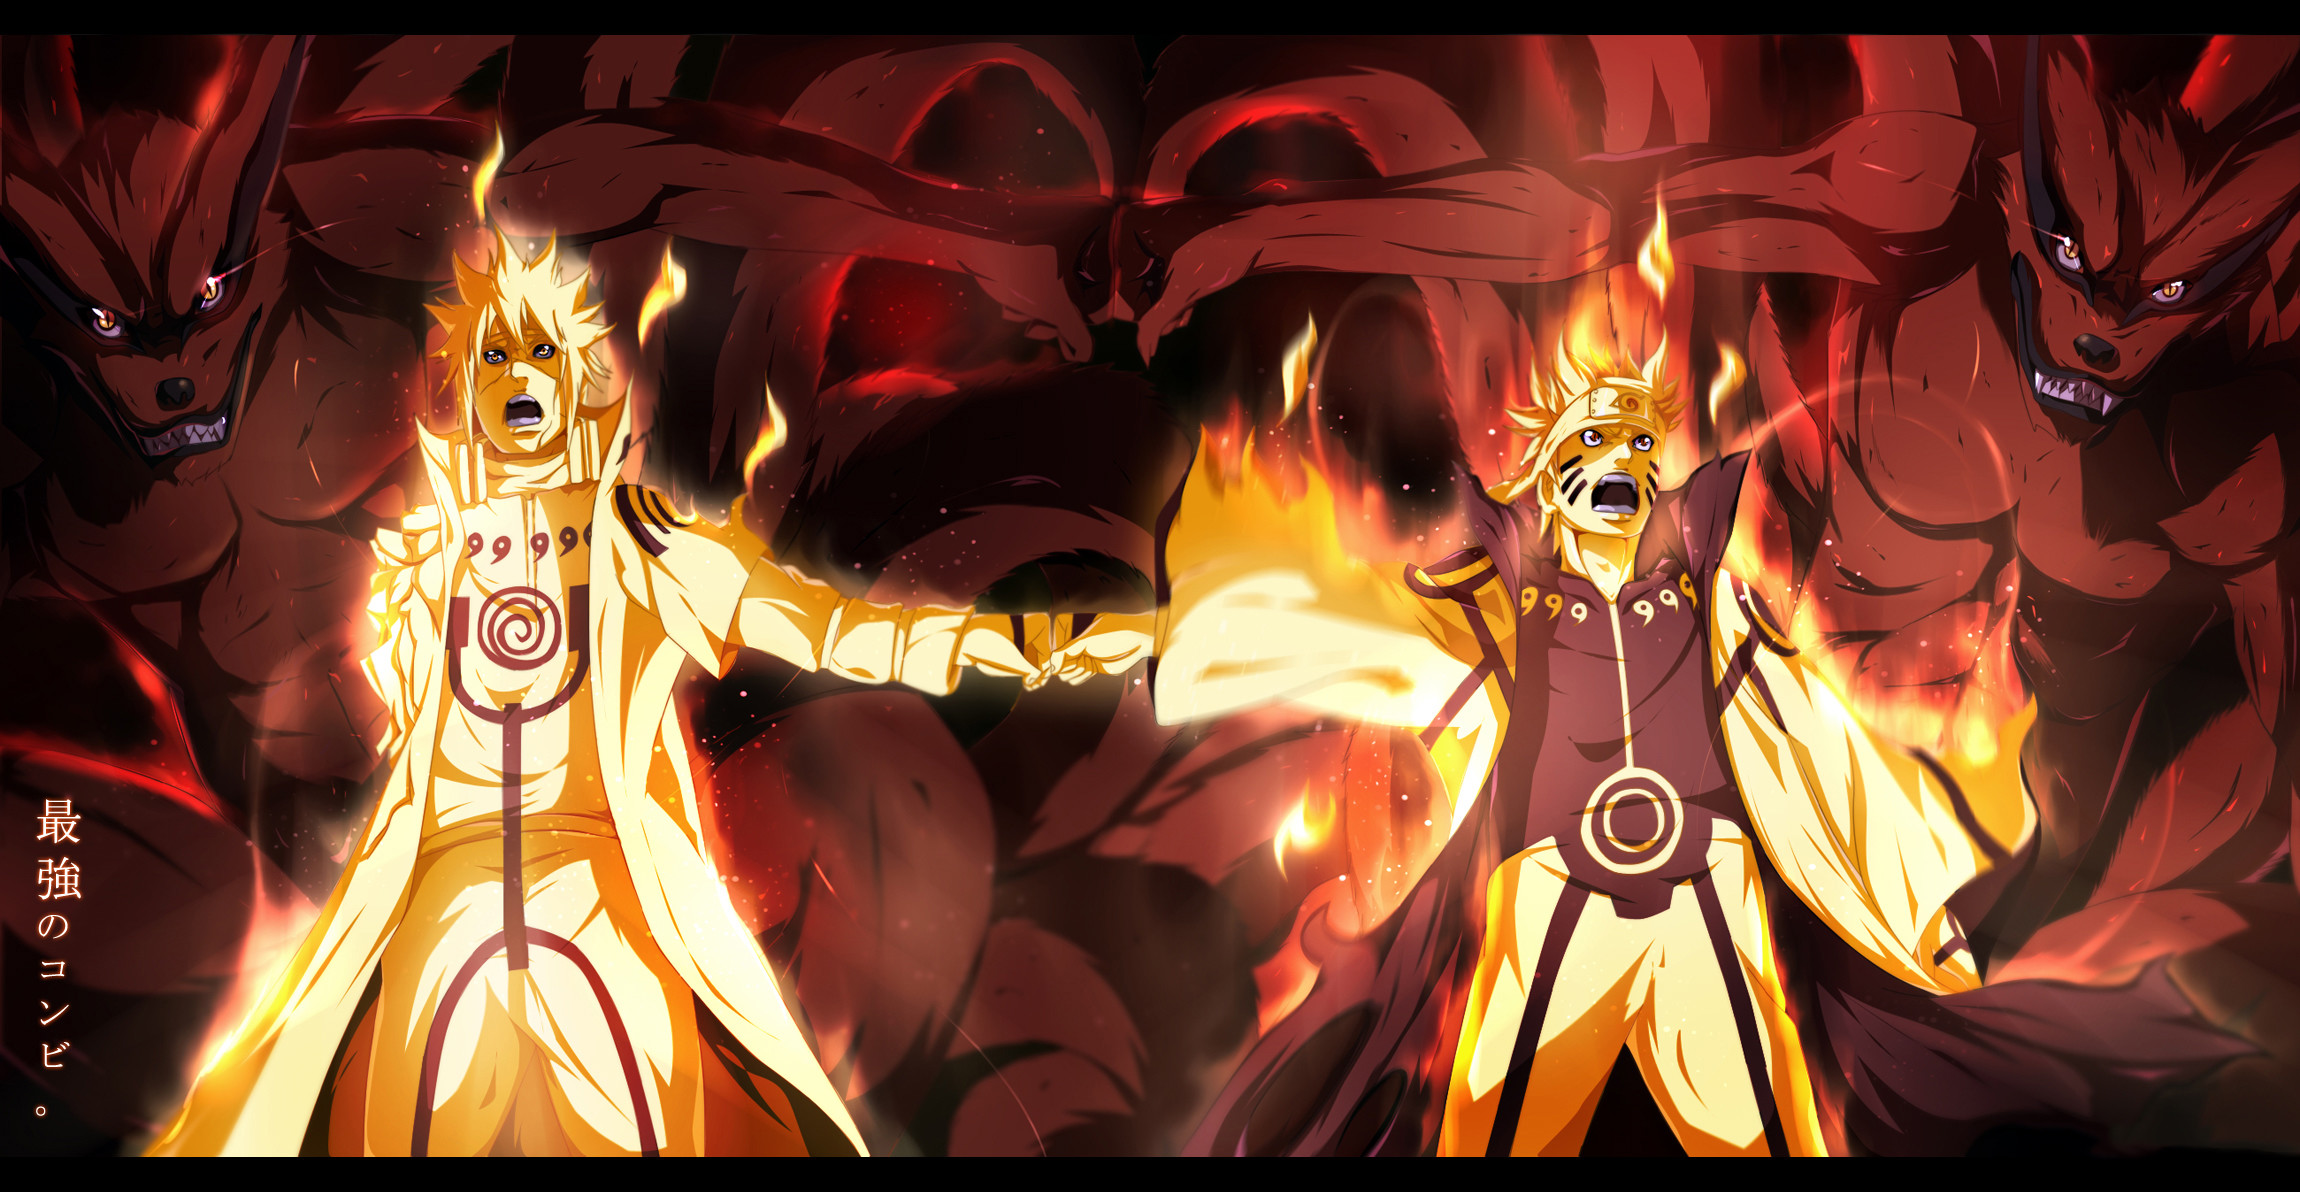 450481 amazing naruto nine tails wallpaper 2300x1192 for iphone 6